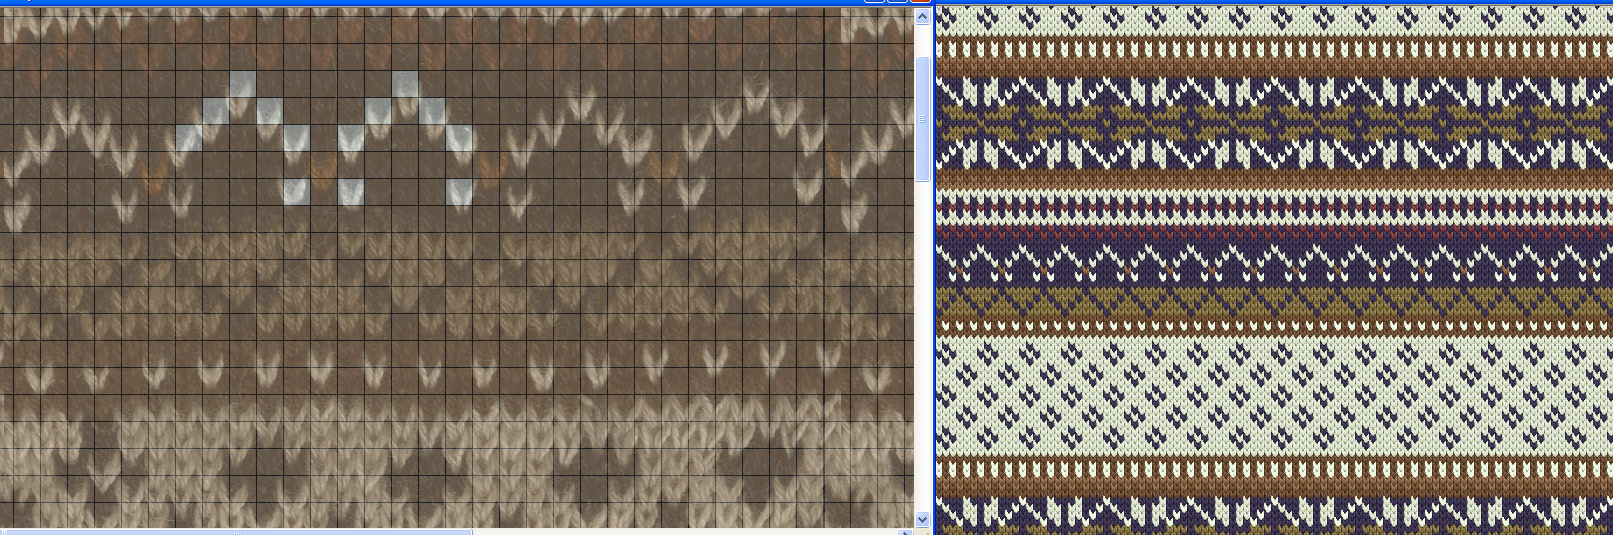 two knit fabric scans side by side showing virtual sample reproduction